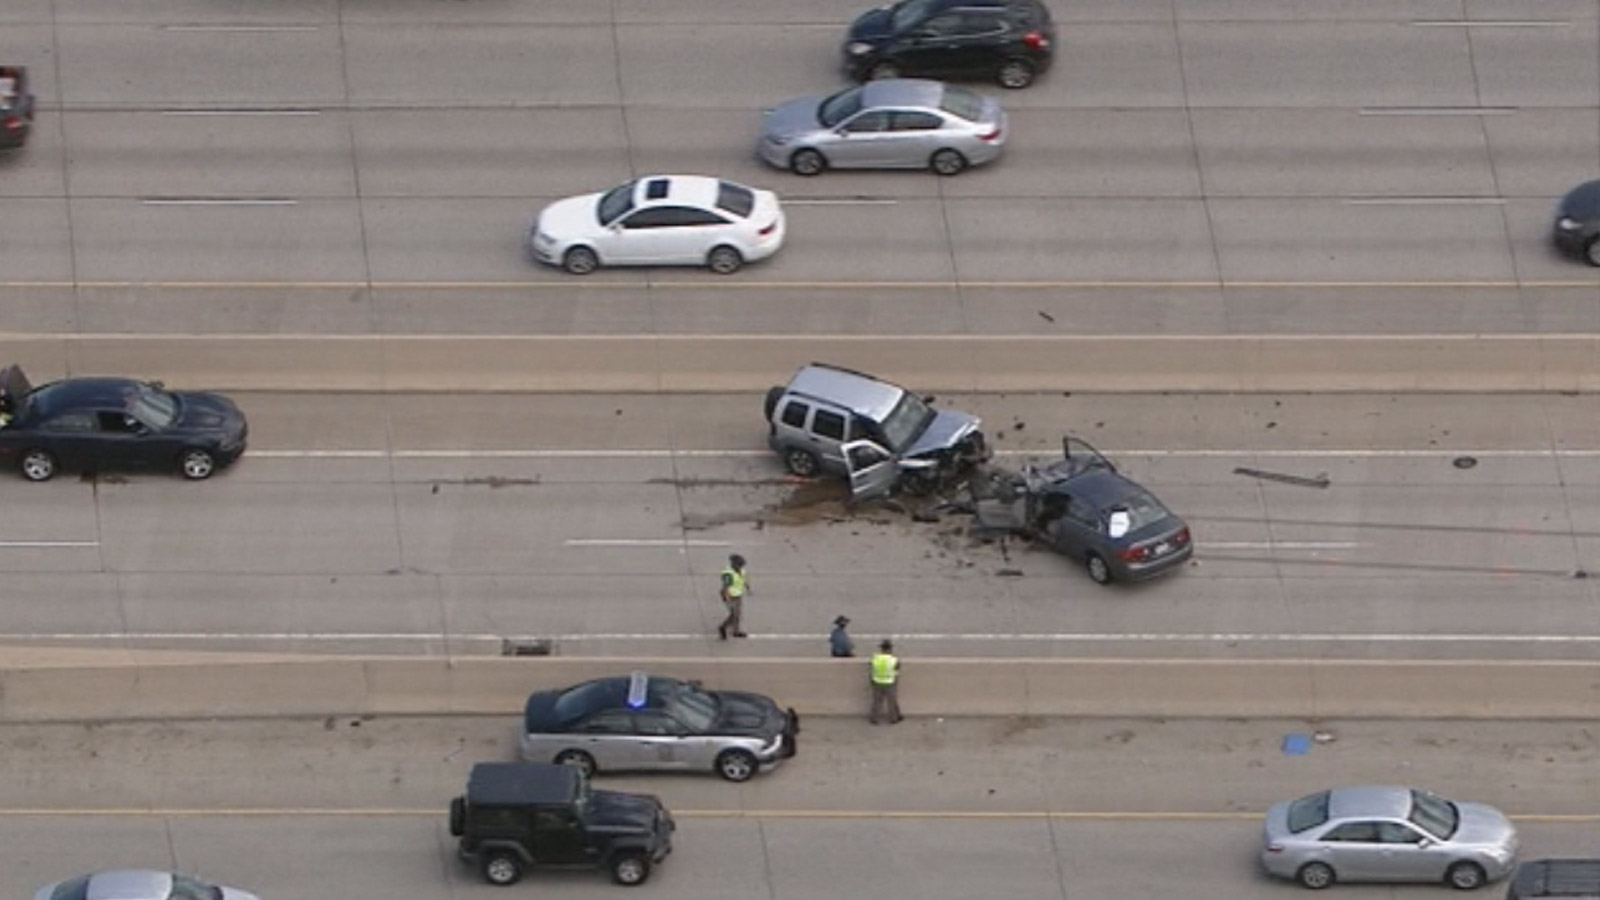 Copter4 flew over the possible wrong-way crash in the HOV Lanes of I-25 (credit: CBS)